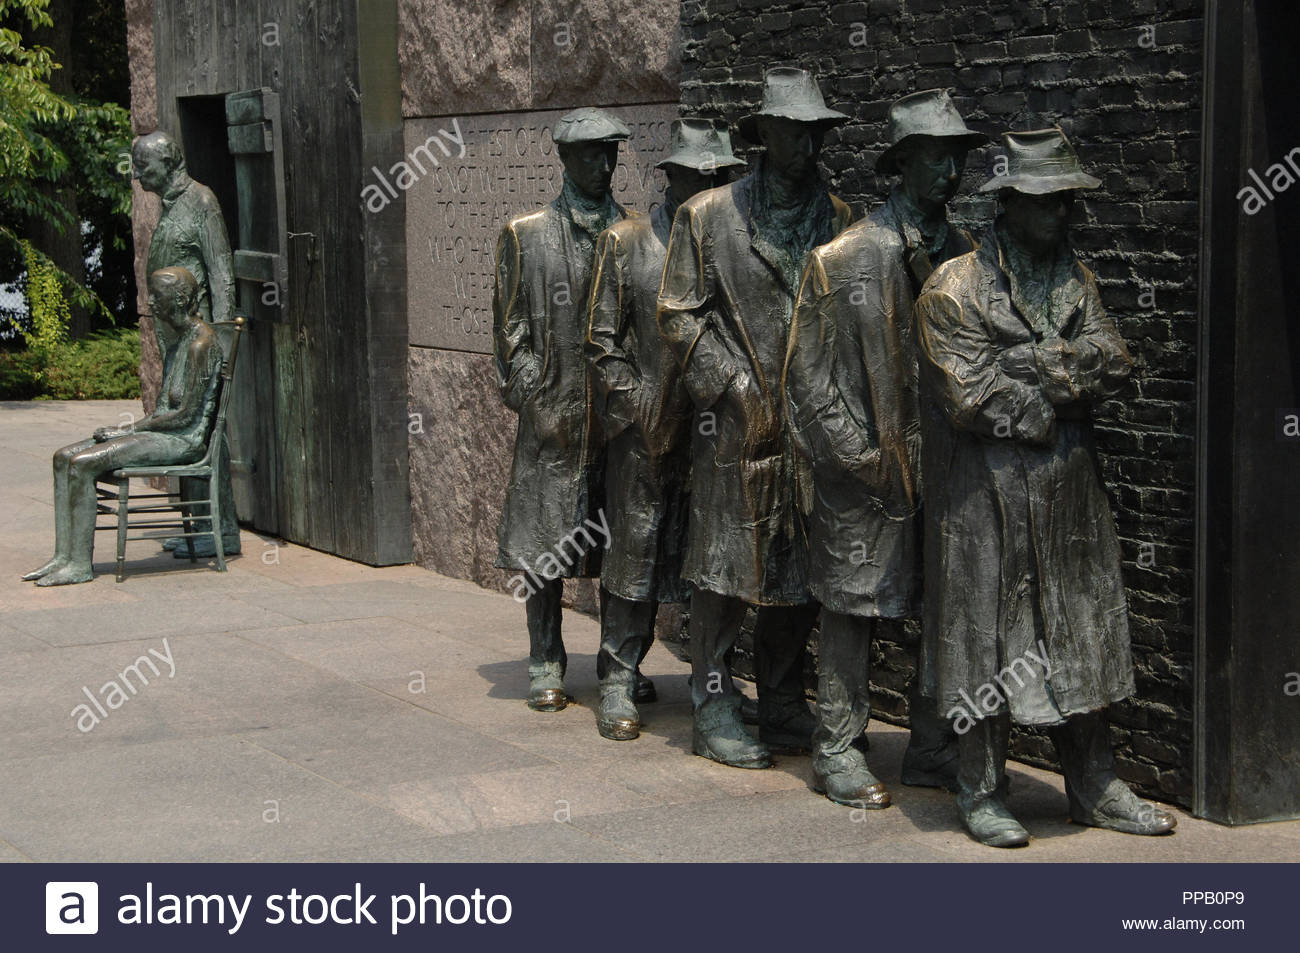 Franklin Delano Roosevelt Memorial. Bronze statues that depict the Great Depression. Waiting in a bread line by George Segal. Washington D.C. United States. - Stock Image